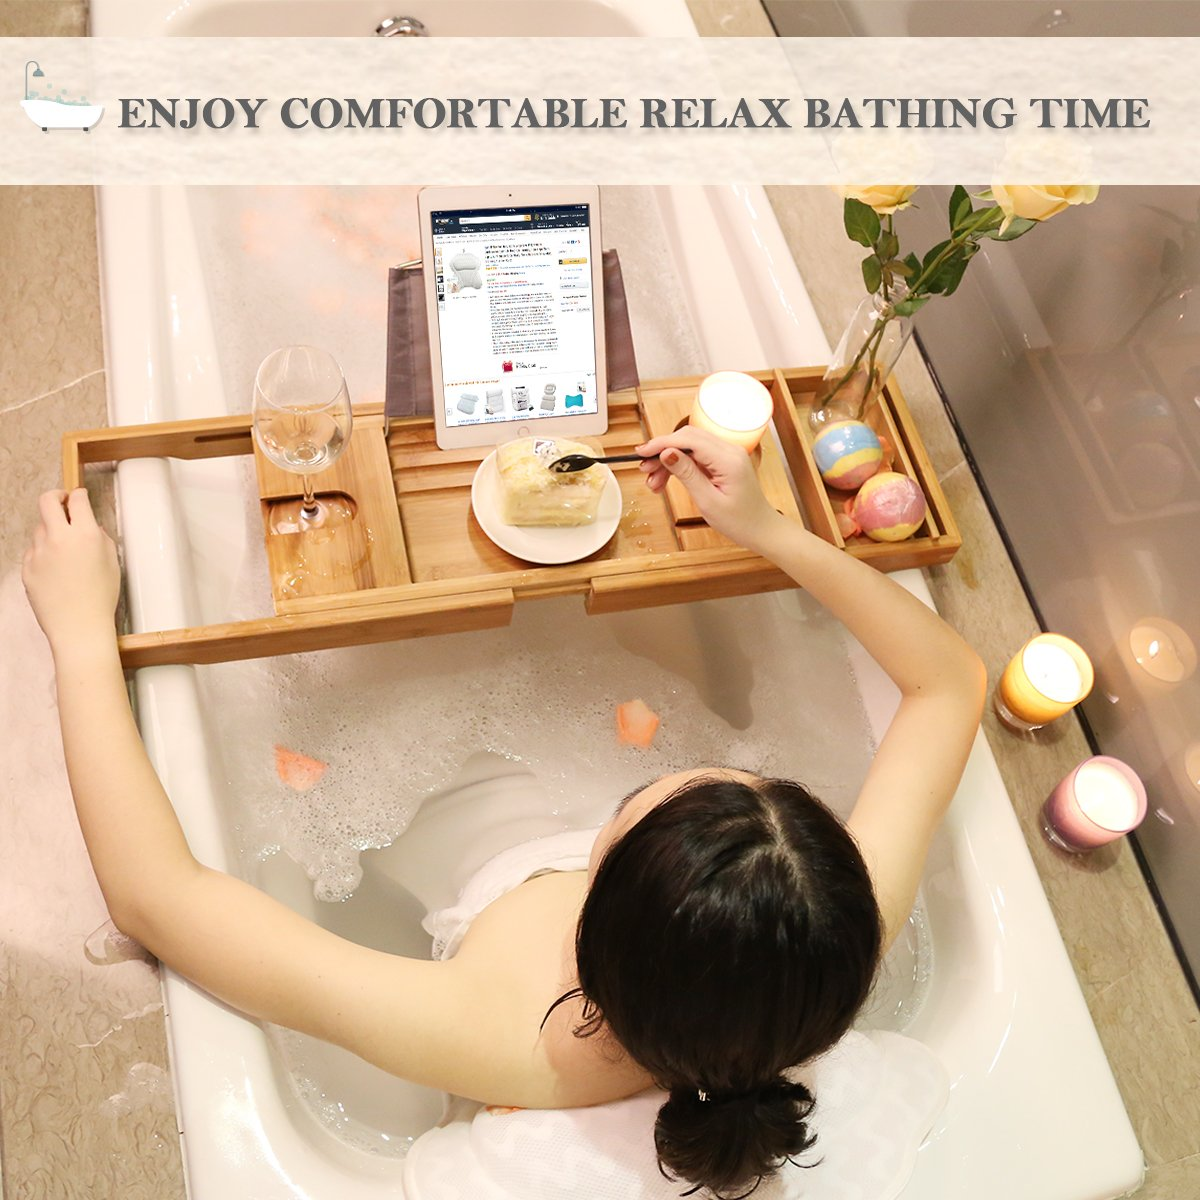 Luxury Bamboo Bathtub Caddy Tub Organizer with Extending Sides, Book Tablet Wine Holder for Bathing Relaxing CoastaCloud